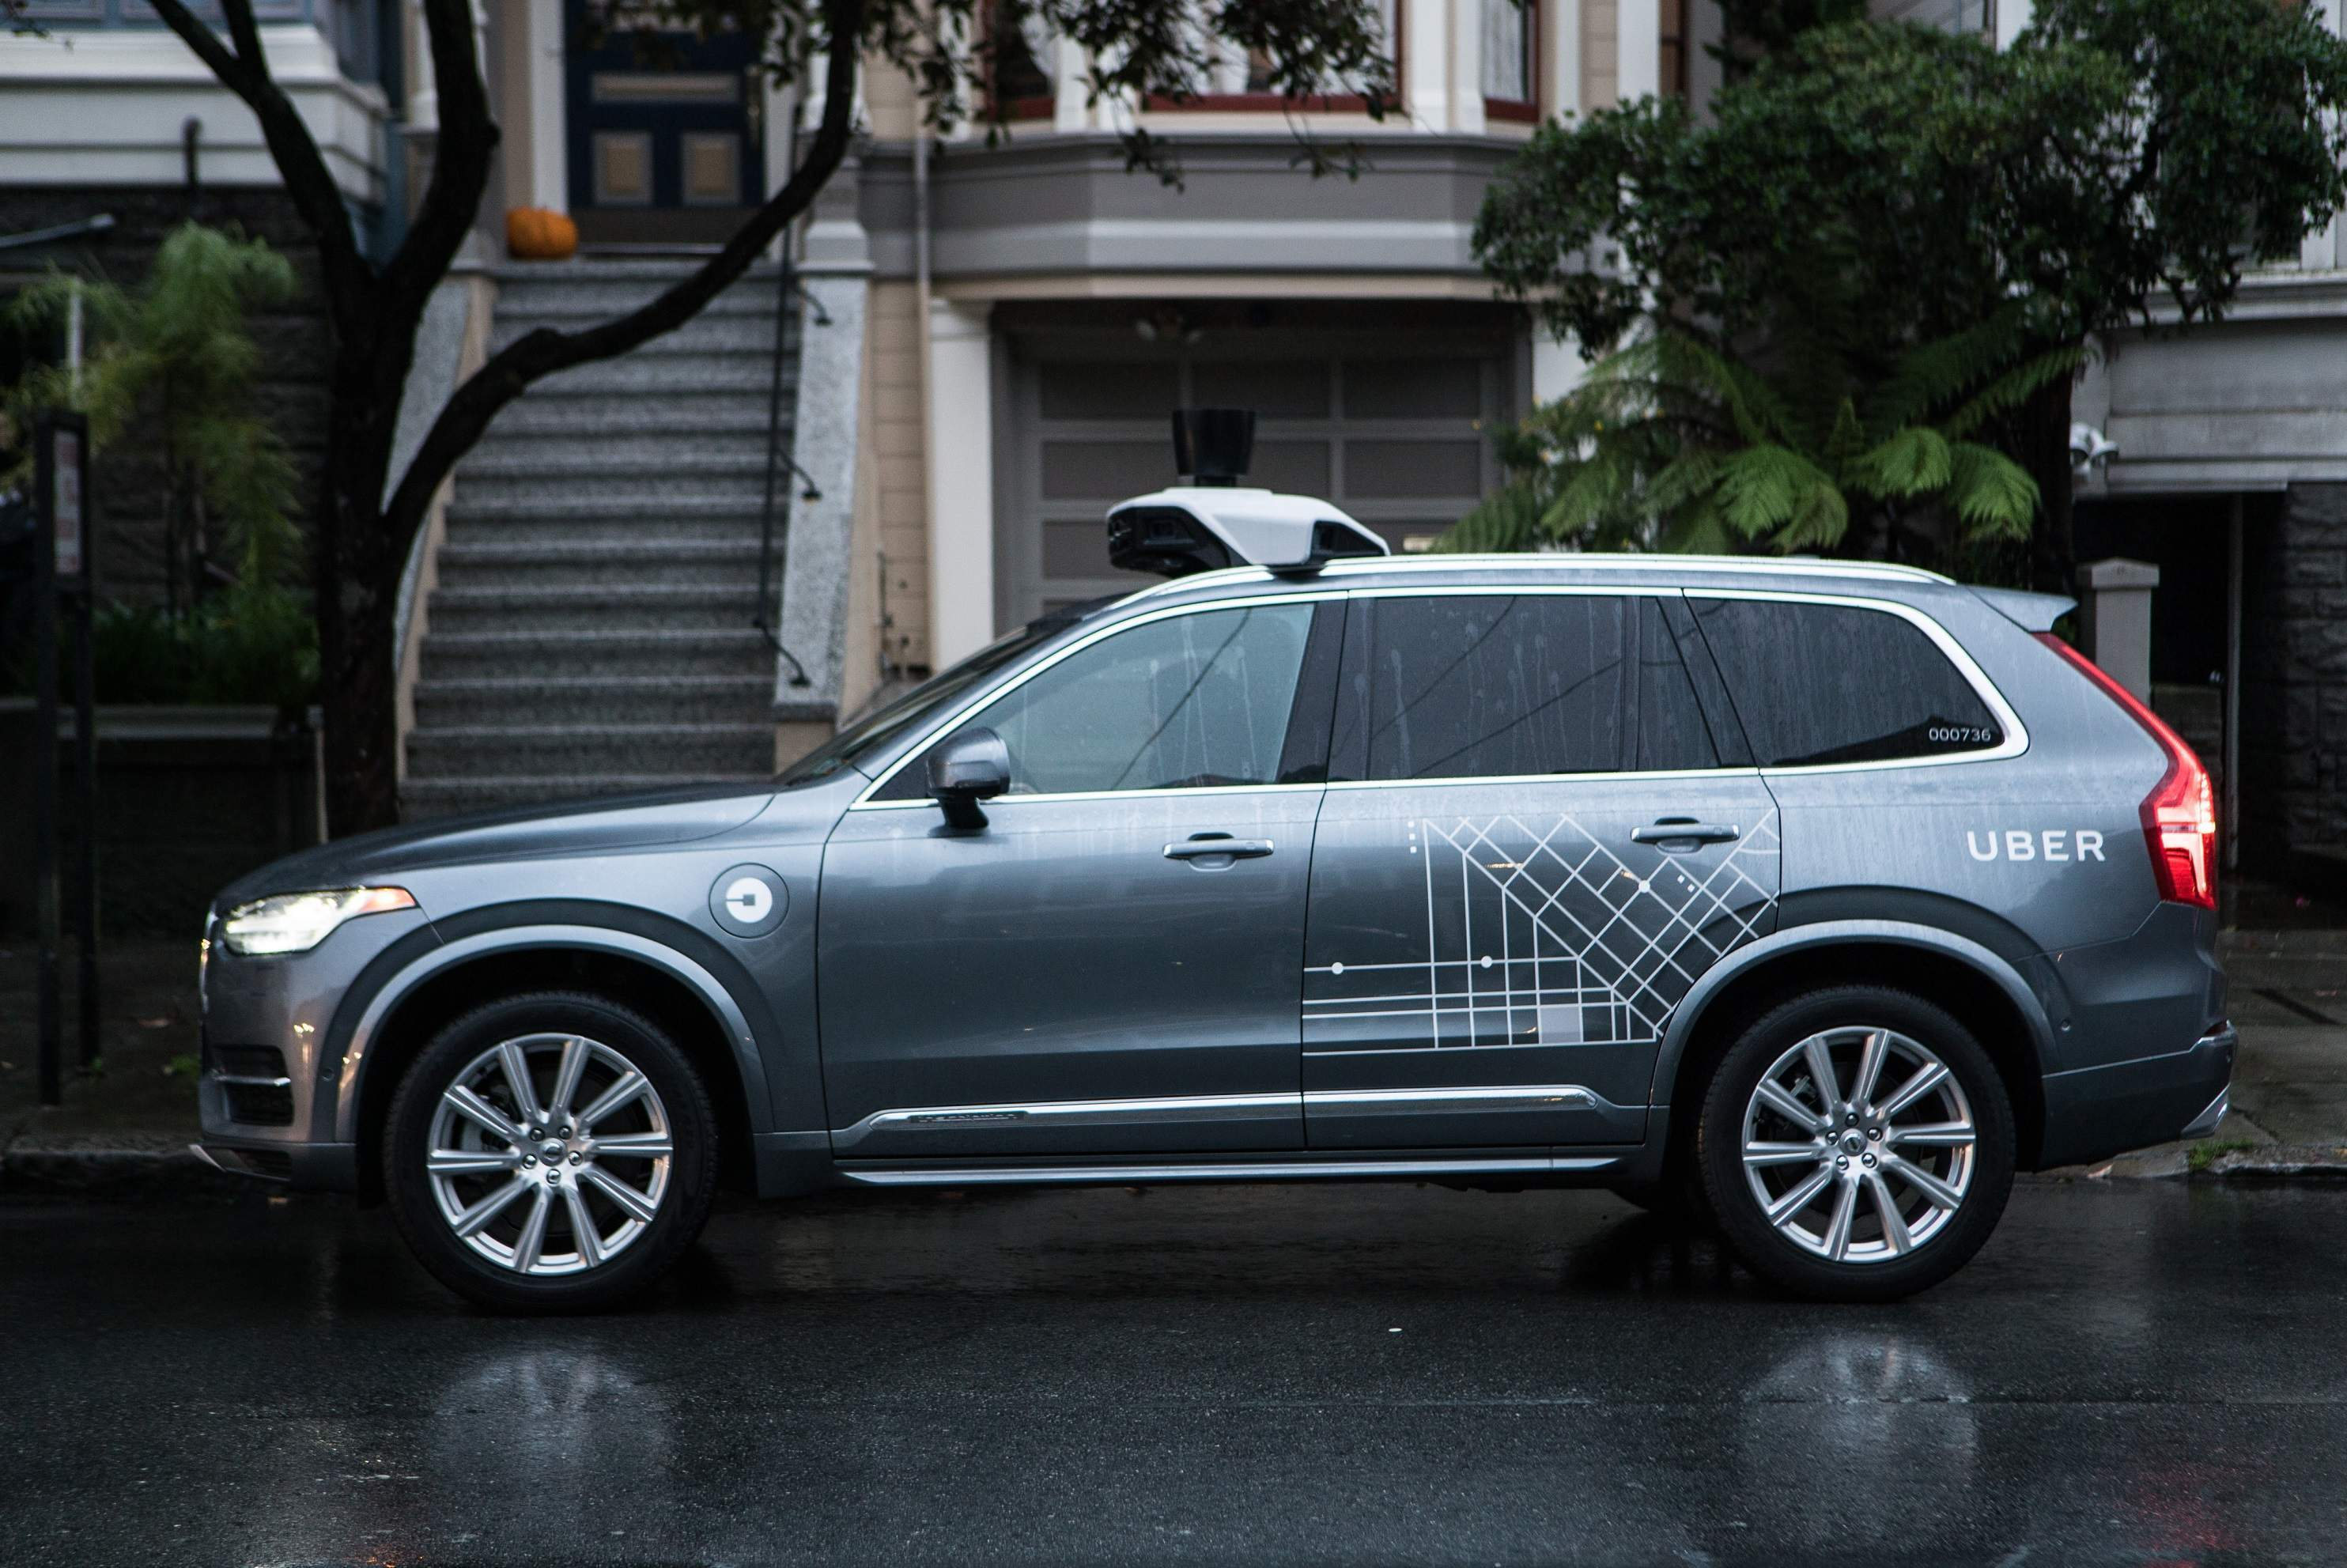 Uber Waymo lawusit: Four things that have come out since Waymo first filed its complaint